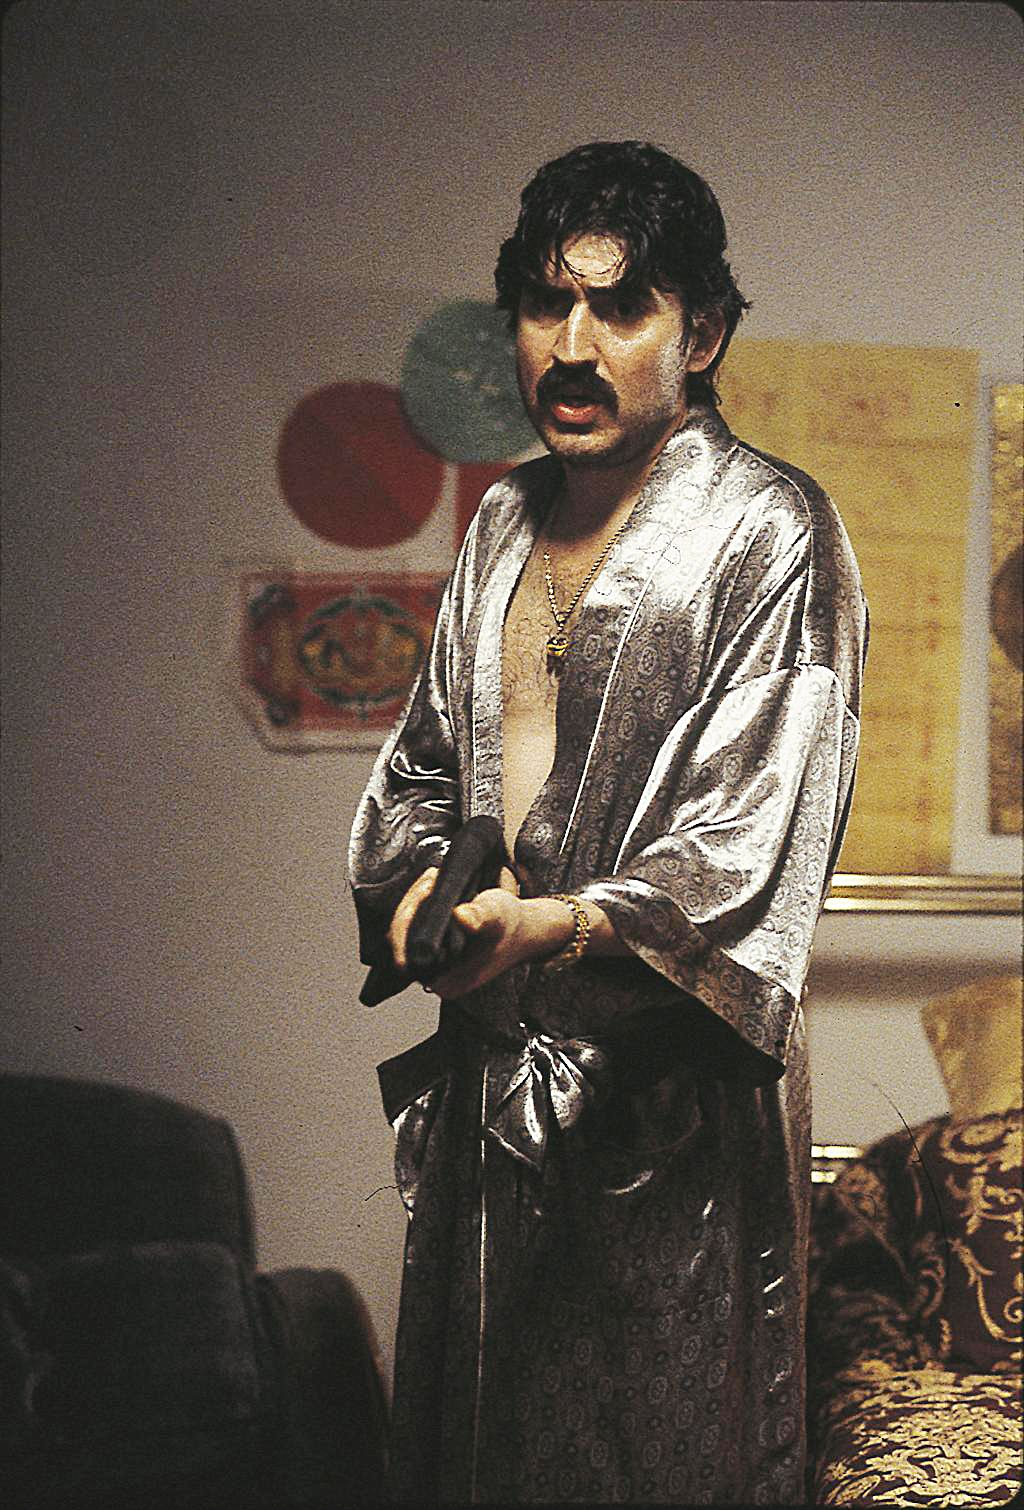 Buy Inspiration: Movie fashion inspired by boogie nights picture trends